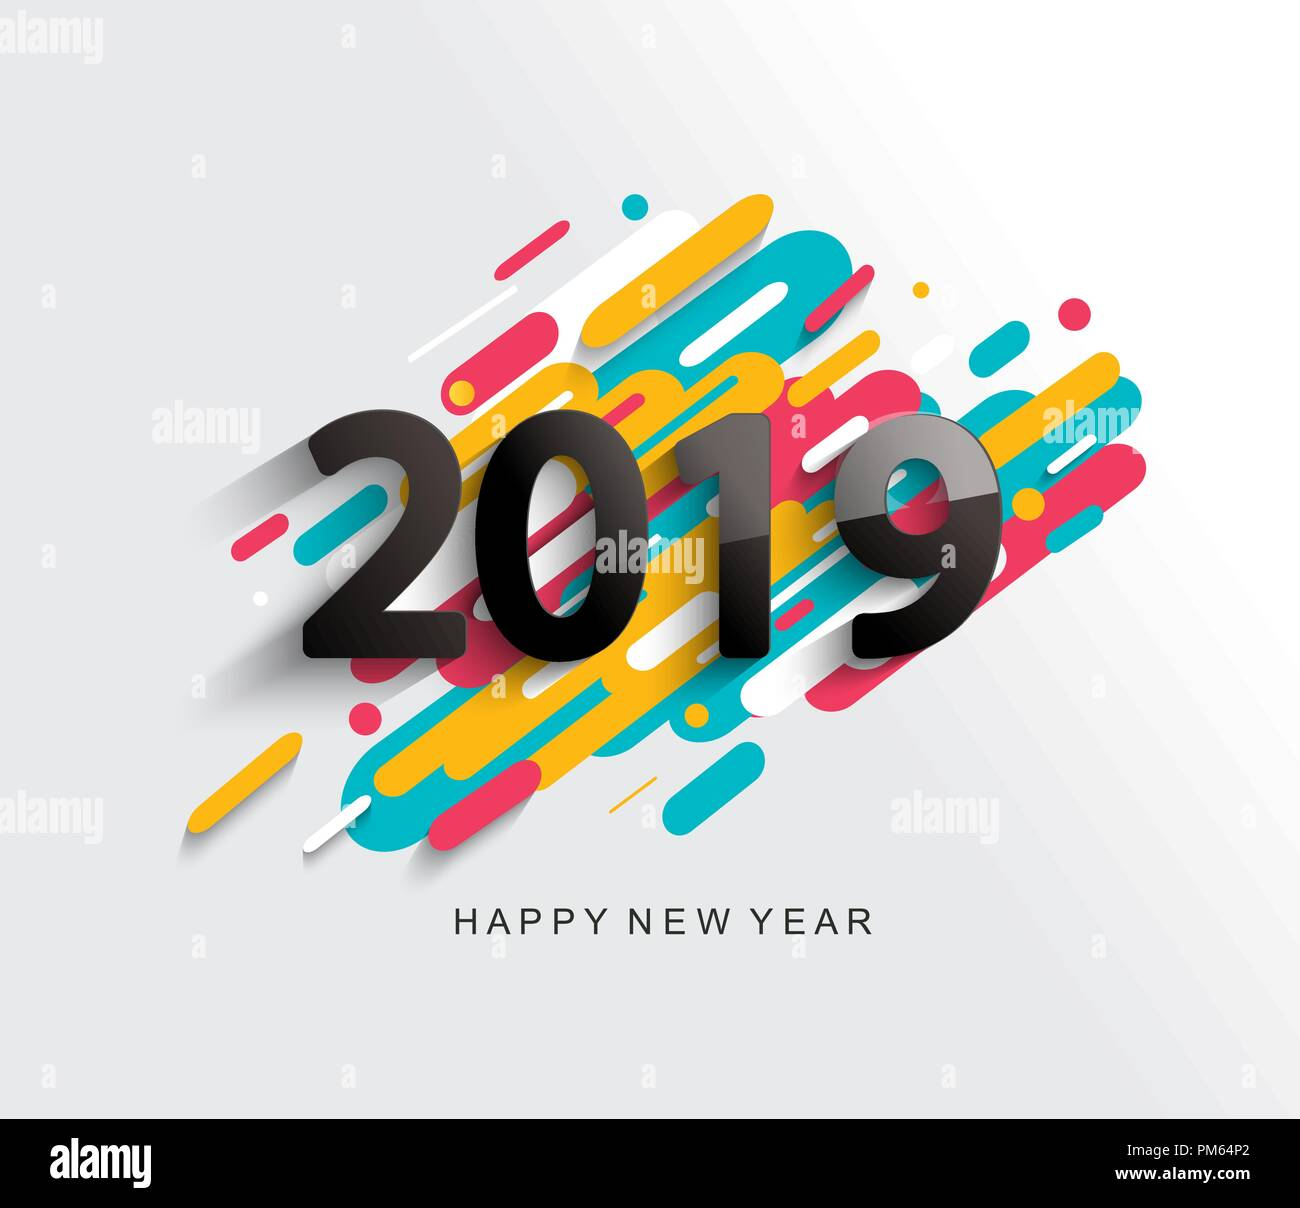 creative happy new year 2019 card on modern background for your seasonal holidays flyers greetings and invitations cards and christmas themed